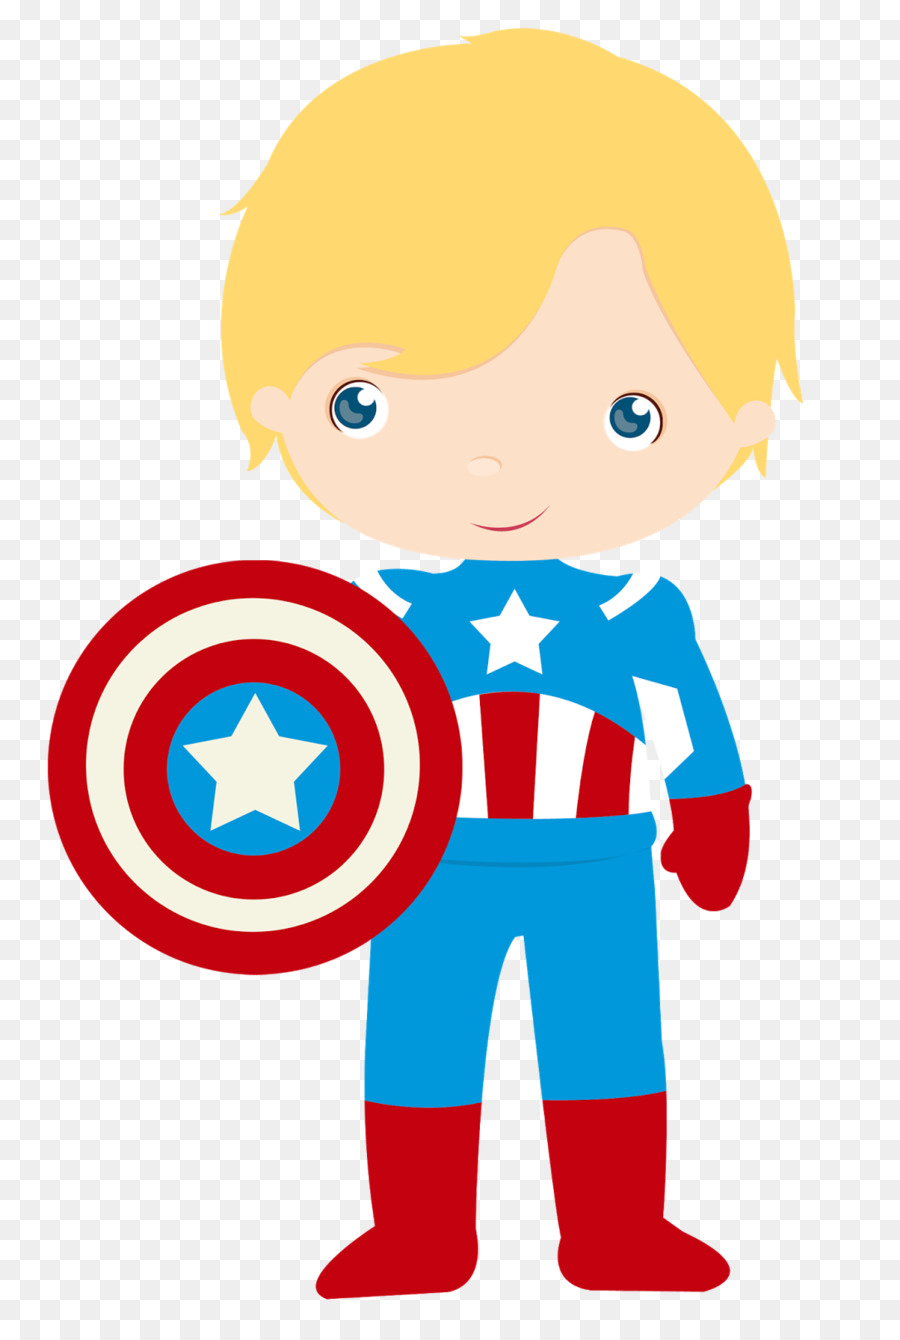 900x1340 Captain America Superhero Iron Man Thor Clip Art